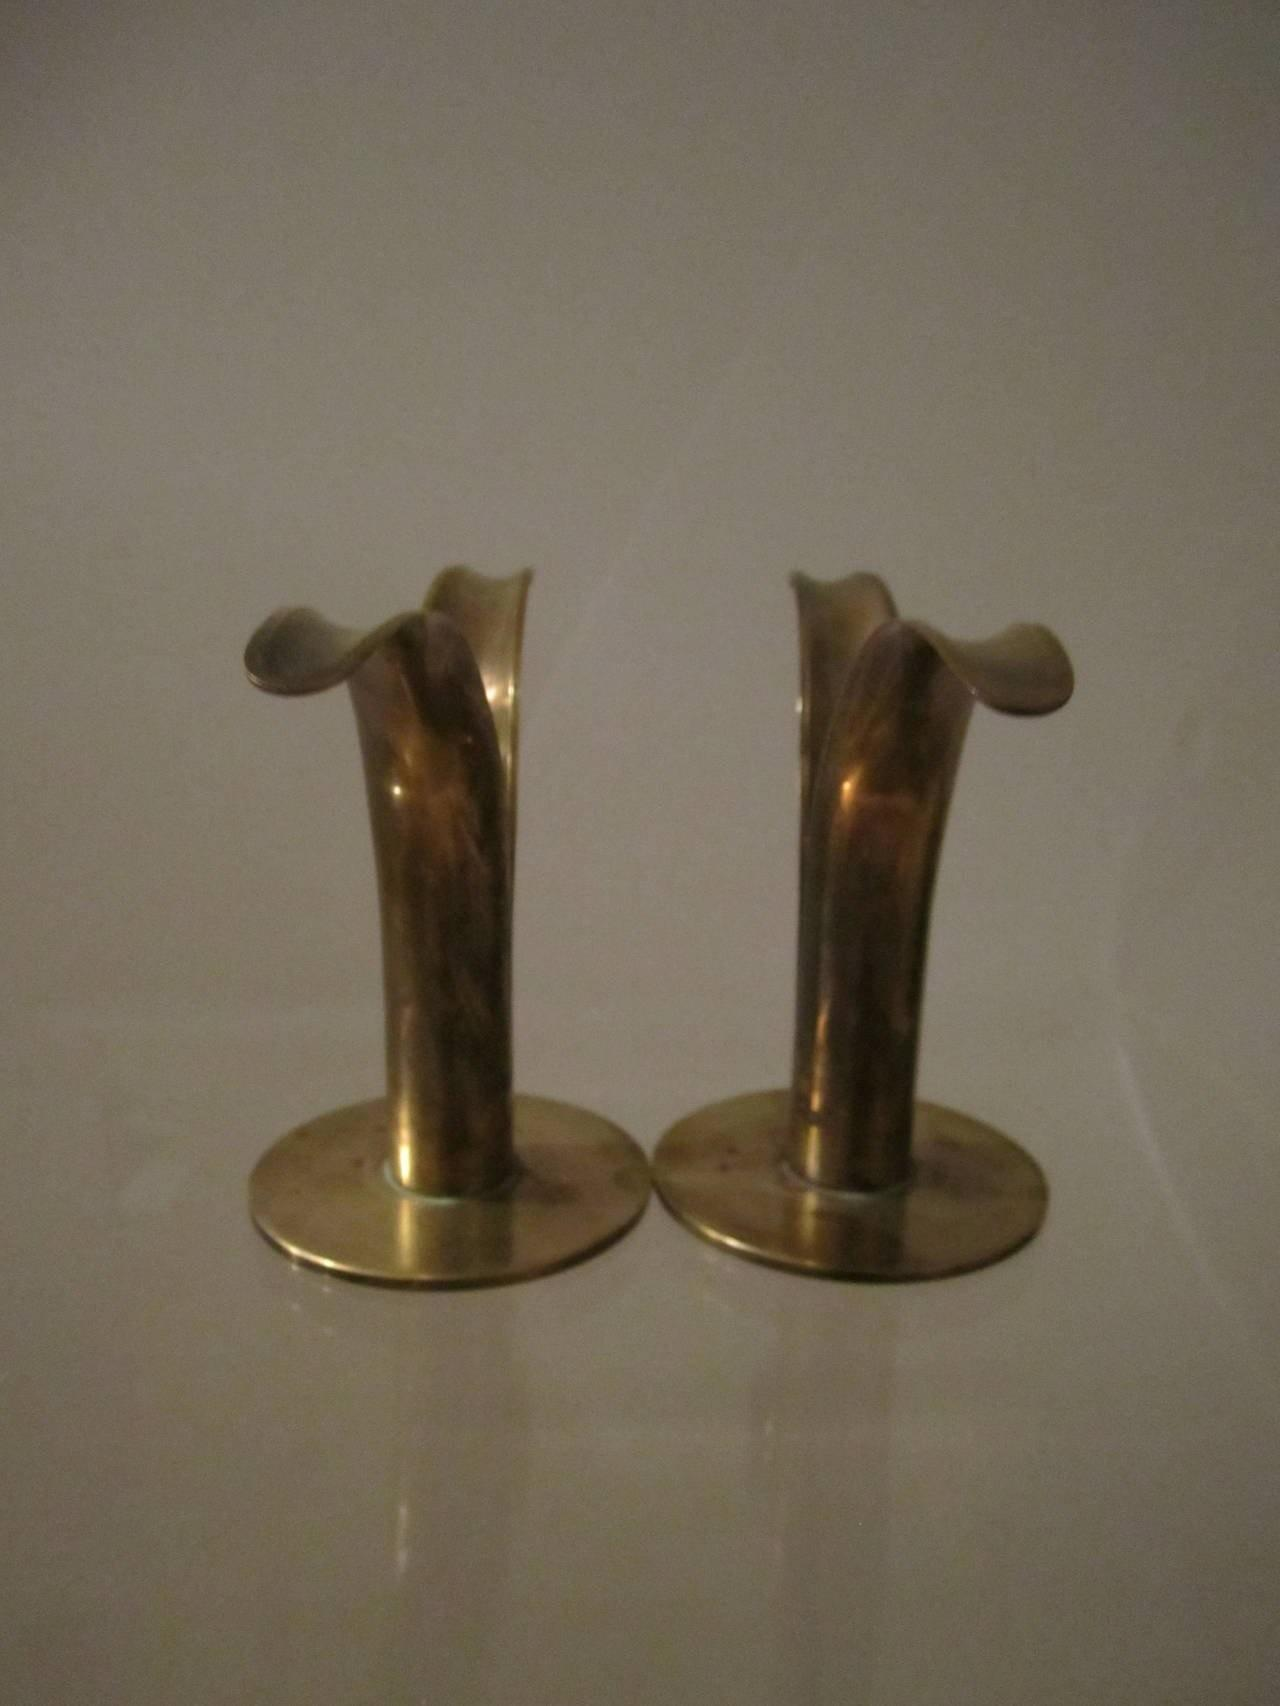 Scandinavian Modern Swedish Brass Candlestick Holders